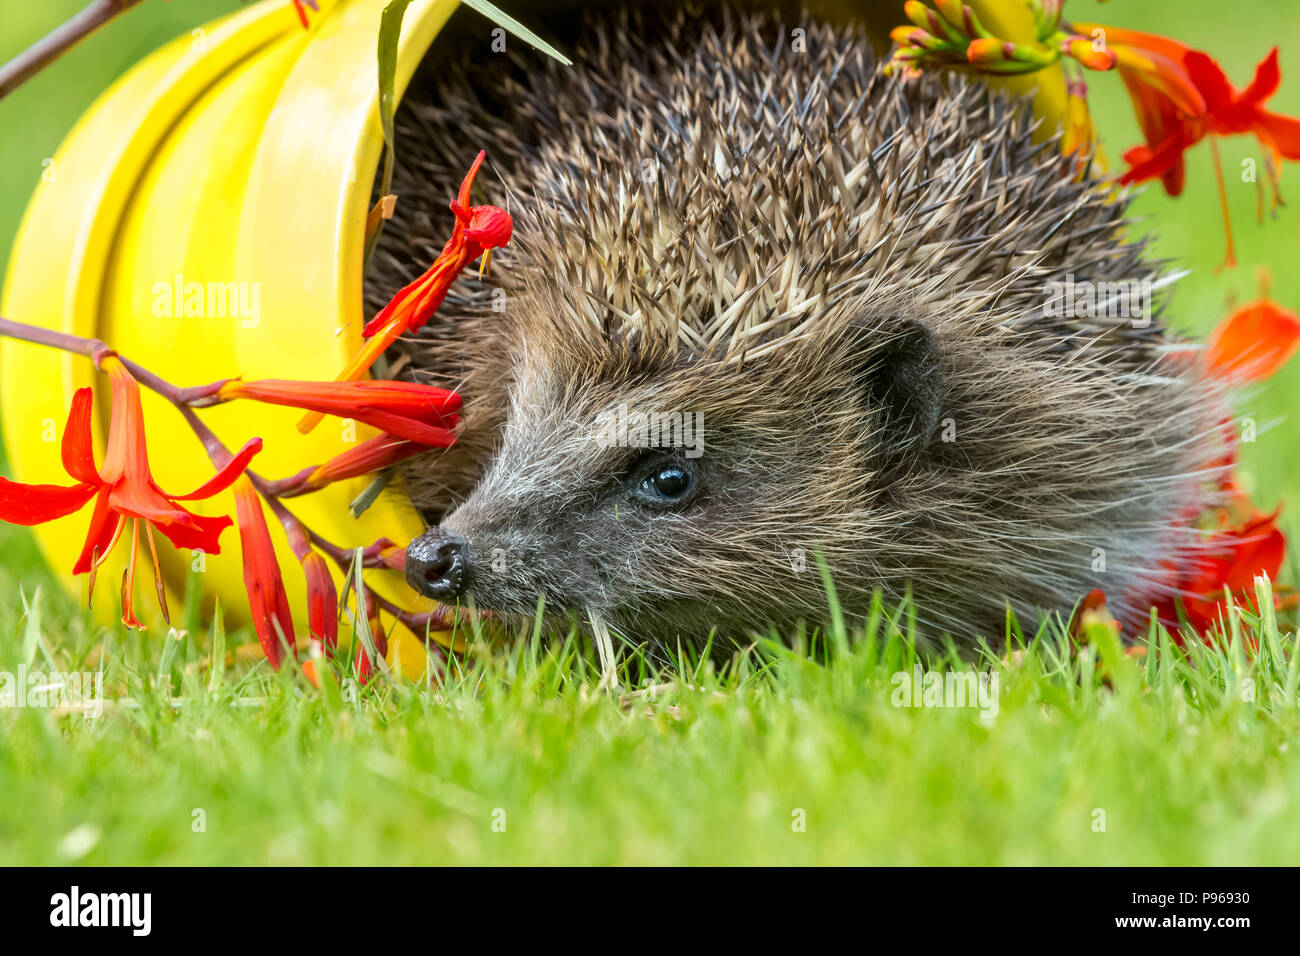 Hedgehog, wild, native hedgehog in yellow plant pot and red flowers.  Scientific name: Erinaceus europaeus.  Landscape - Stock Image